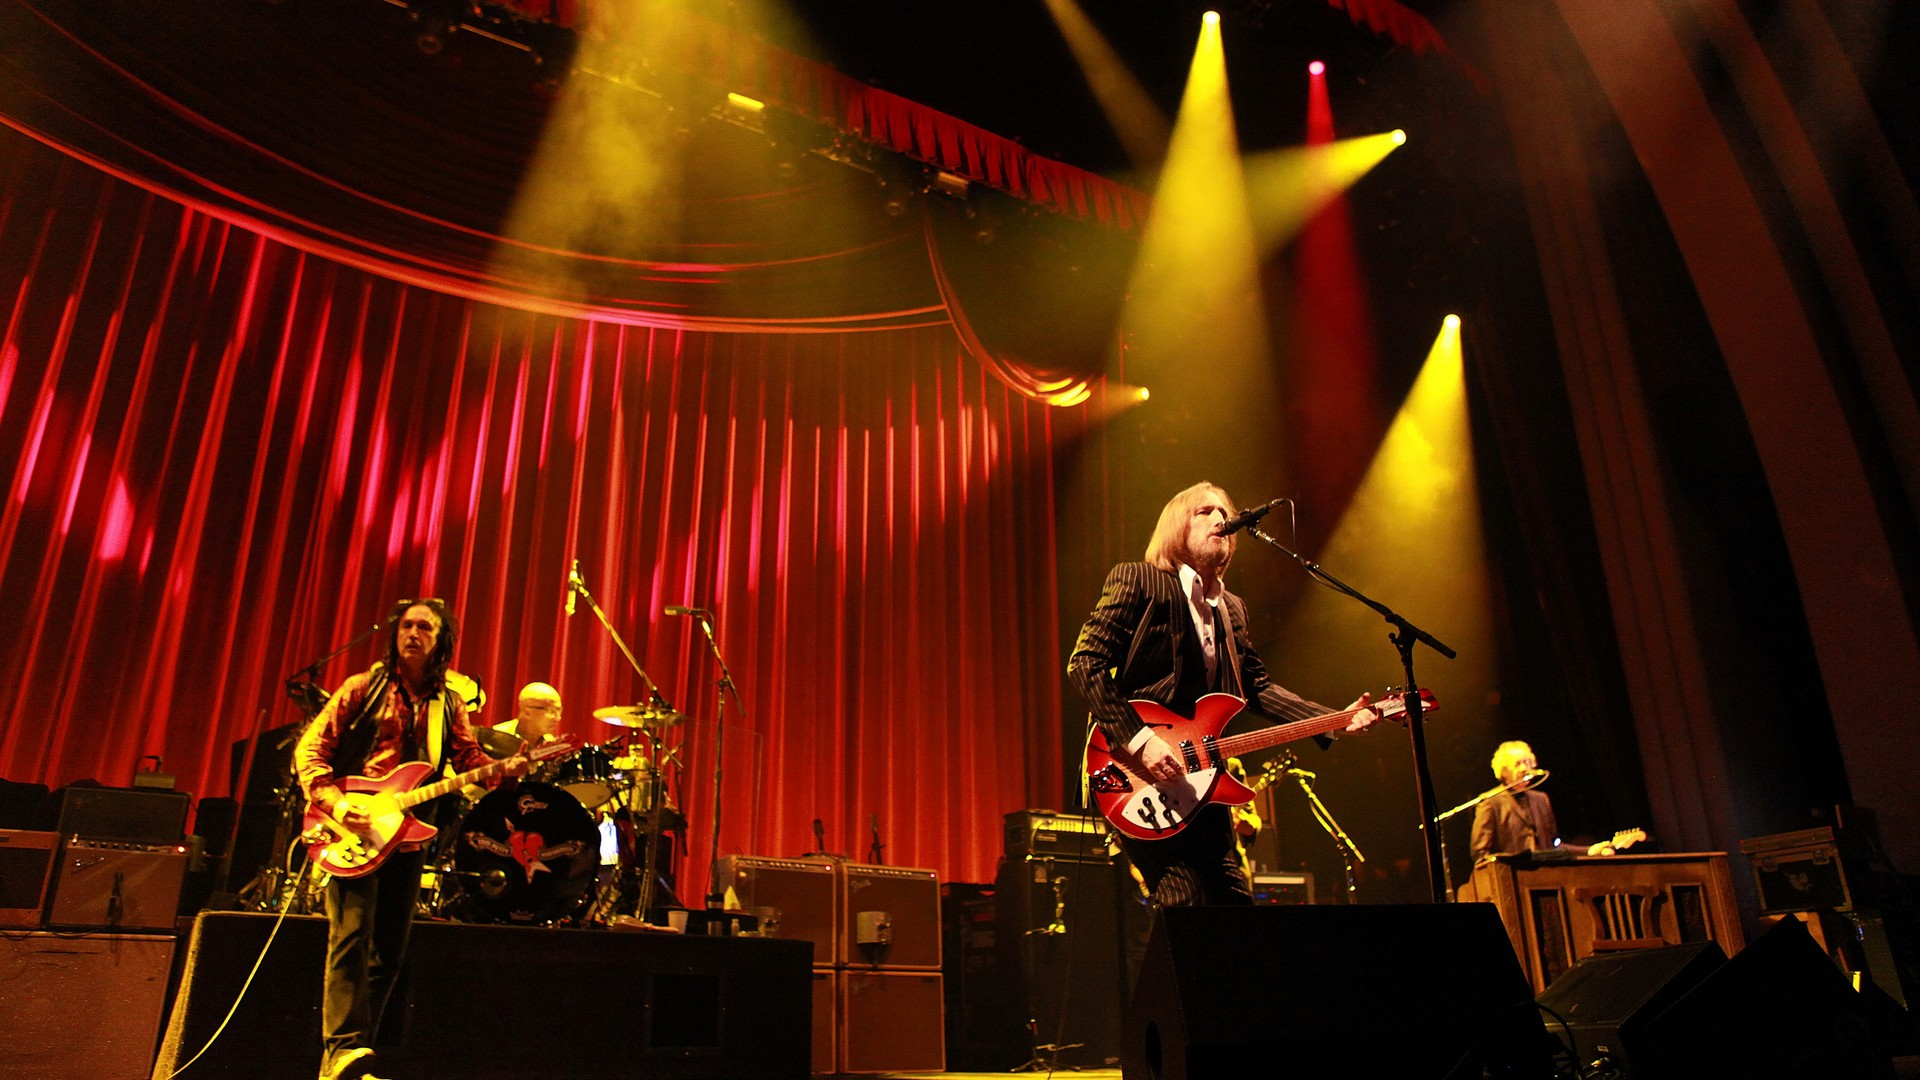 Tom Petty and The Heartbreakers backdrop wallpaper 1920x1080